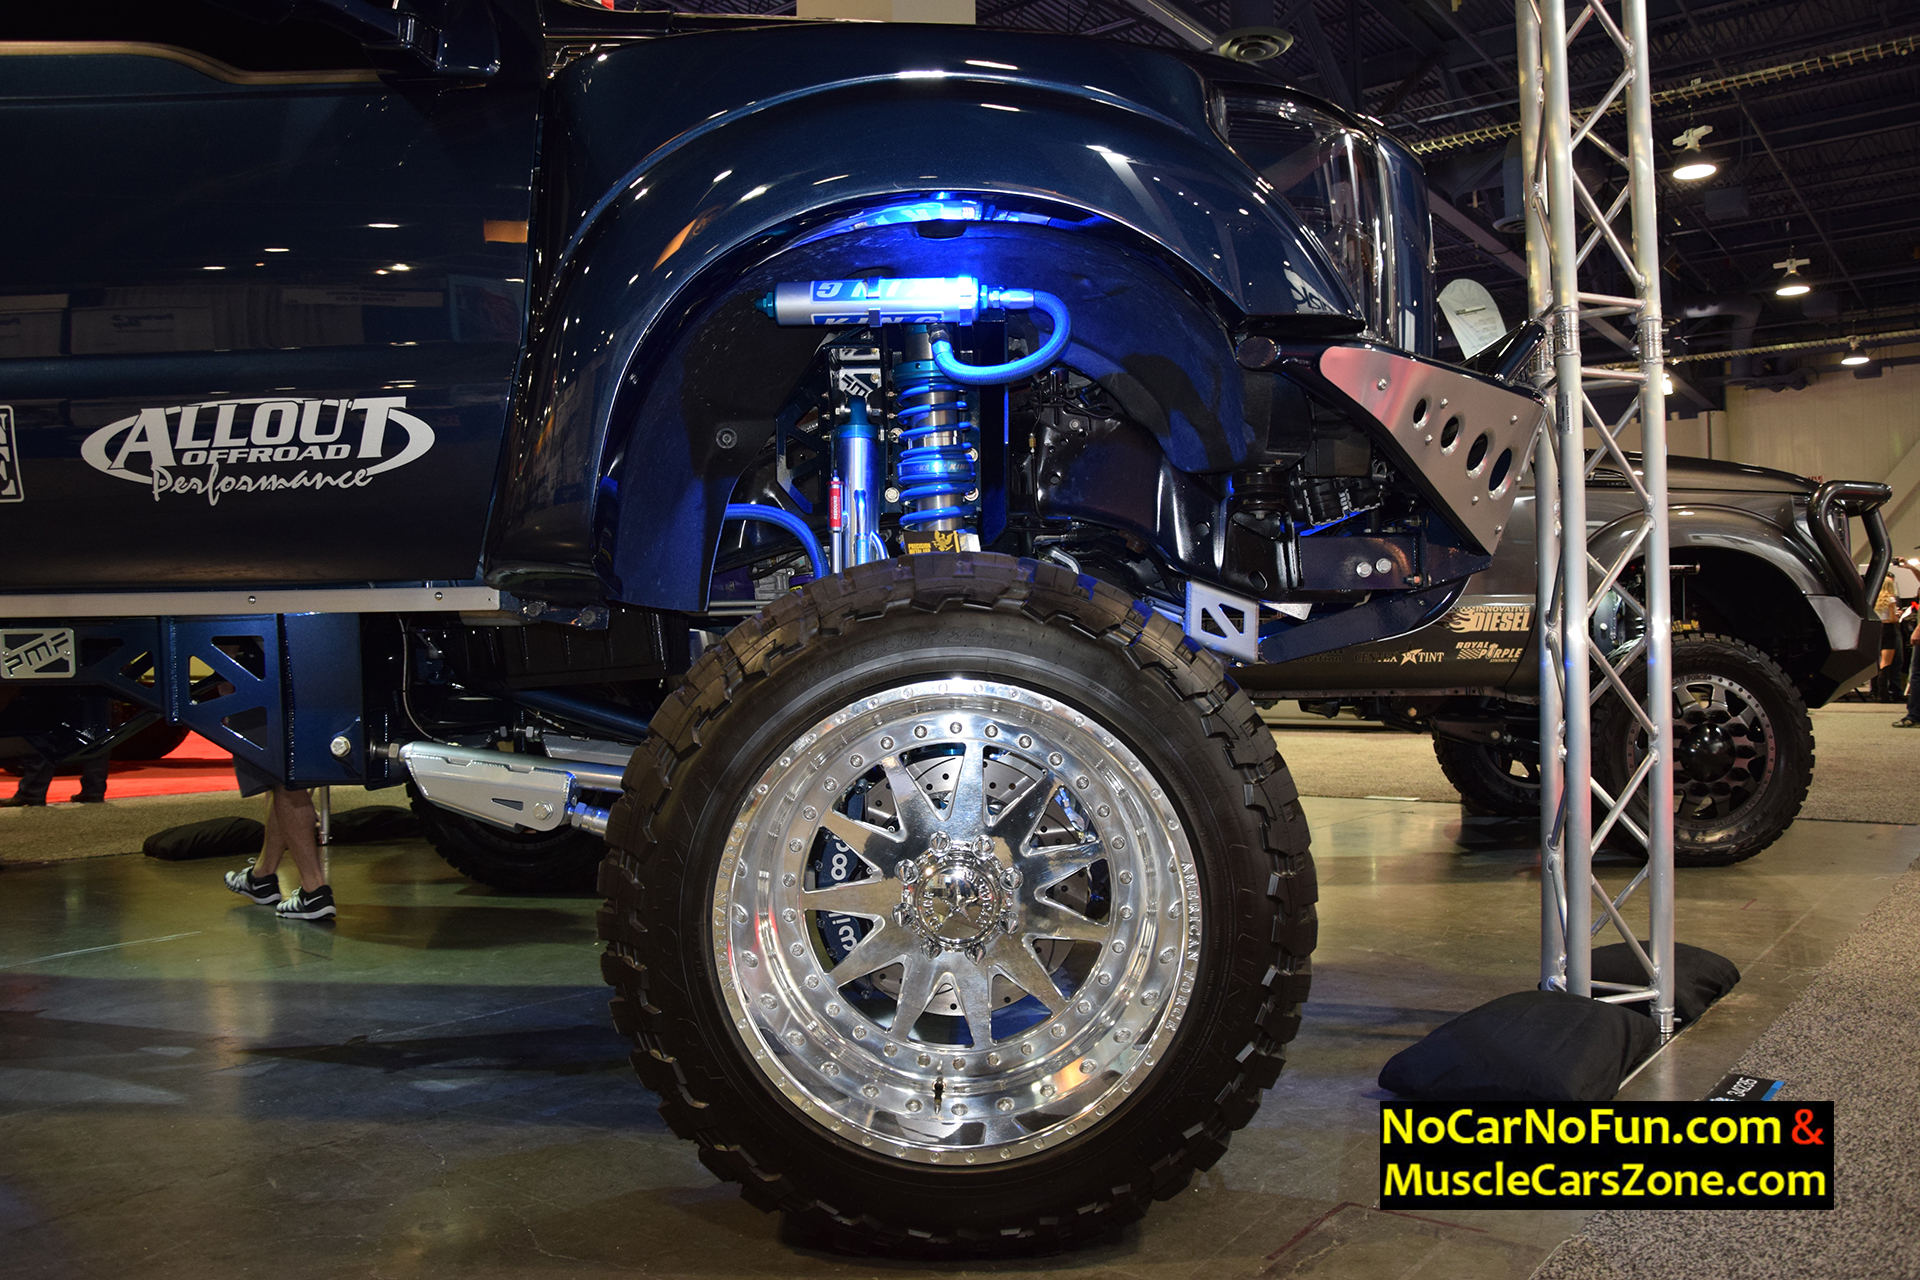 Maxresdefault besides Maxresdefault as well Hqdefault also Dcf Ae D C C Efa B further Maxresdefault. on lifted chevy